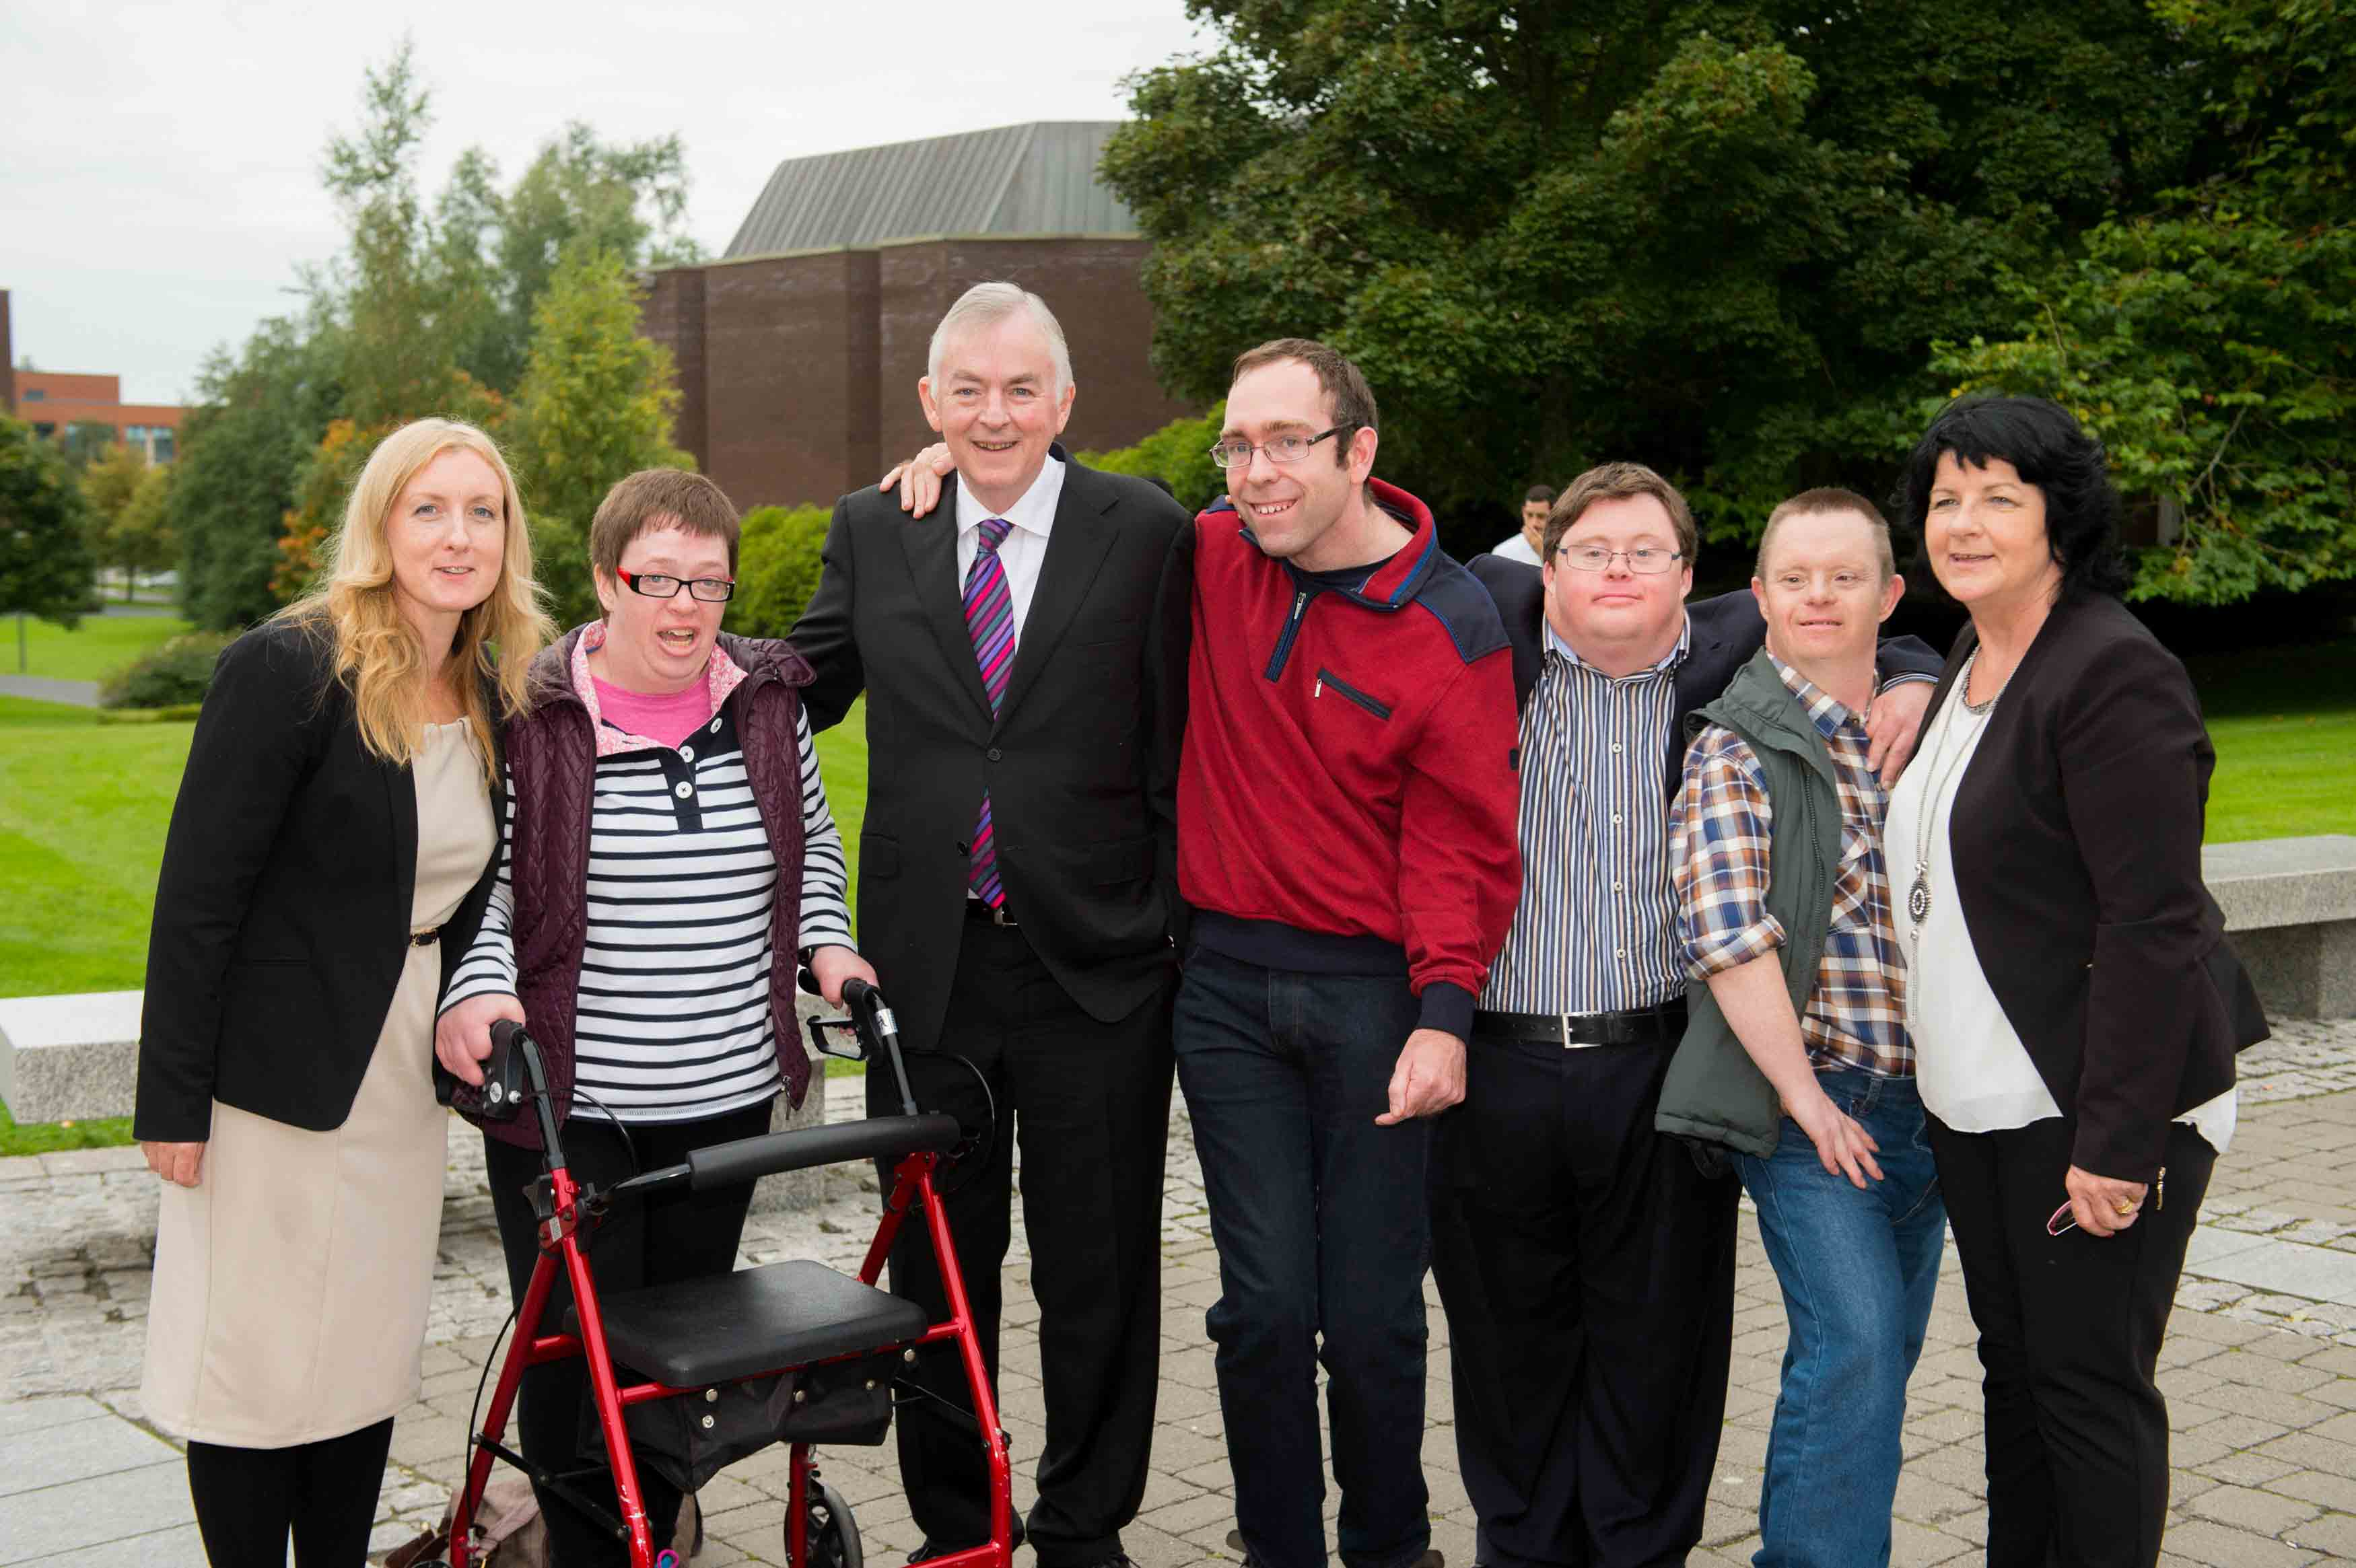 UL Honours Student Volunteers as over 40,000 hours of volunteering is reached